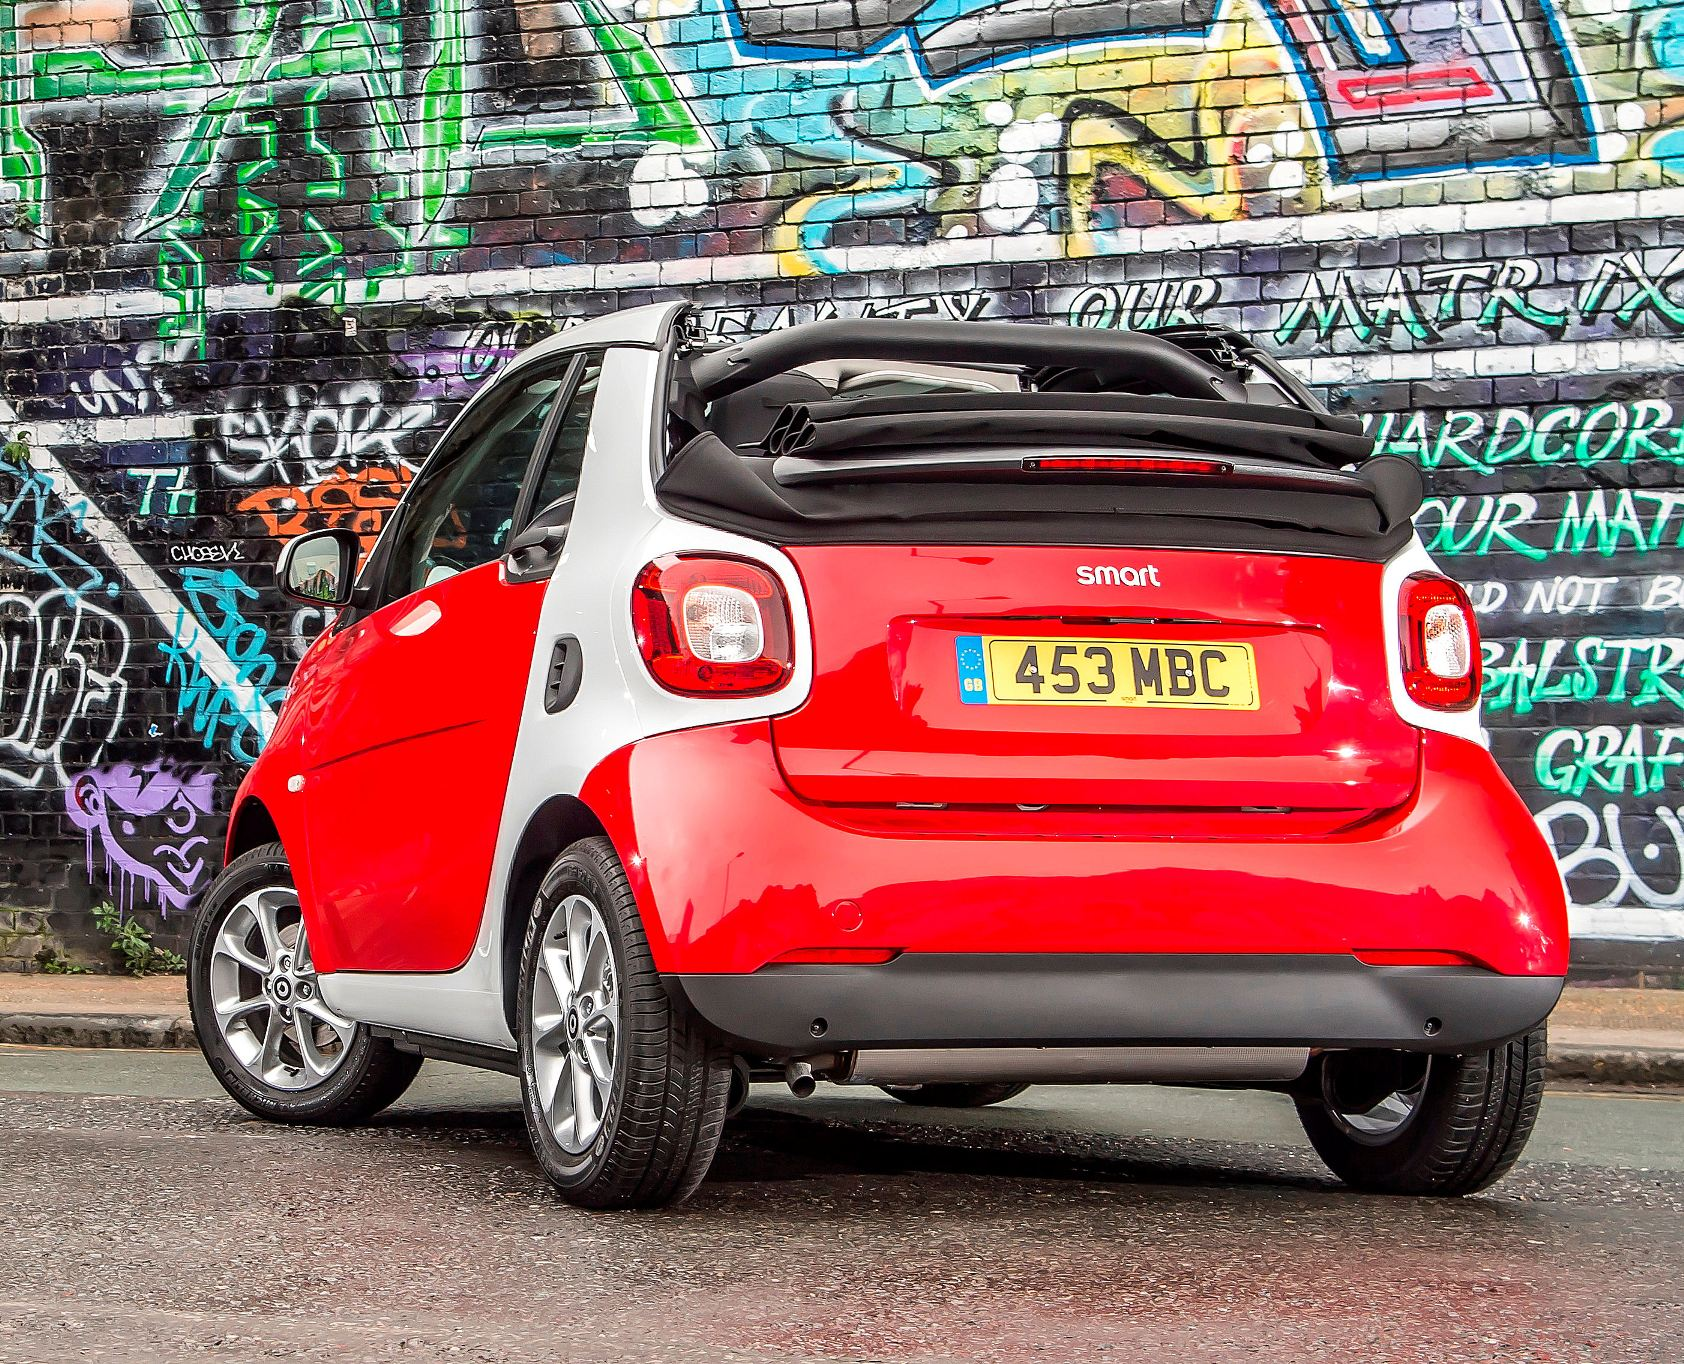 smart-fortwo-cabrio-rear-view-roof-down